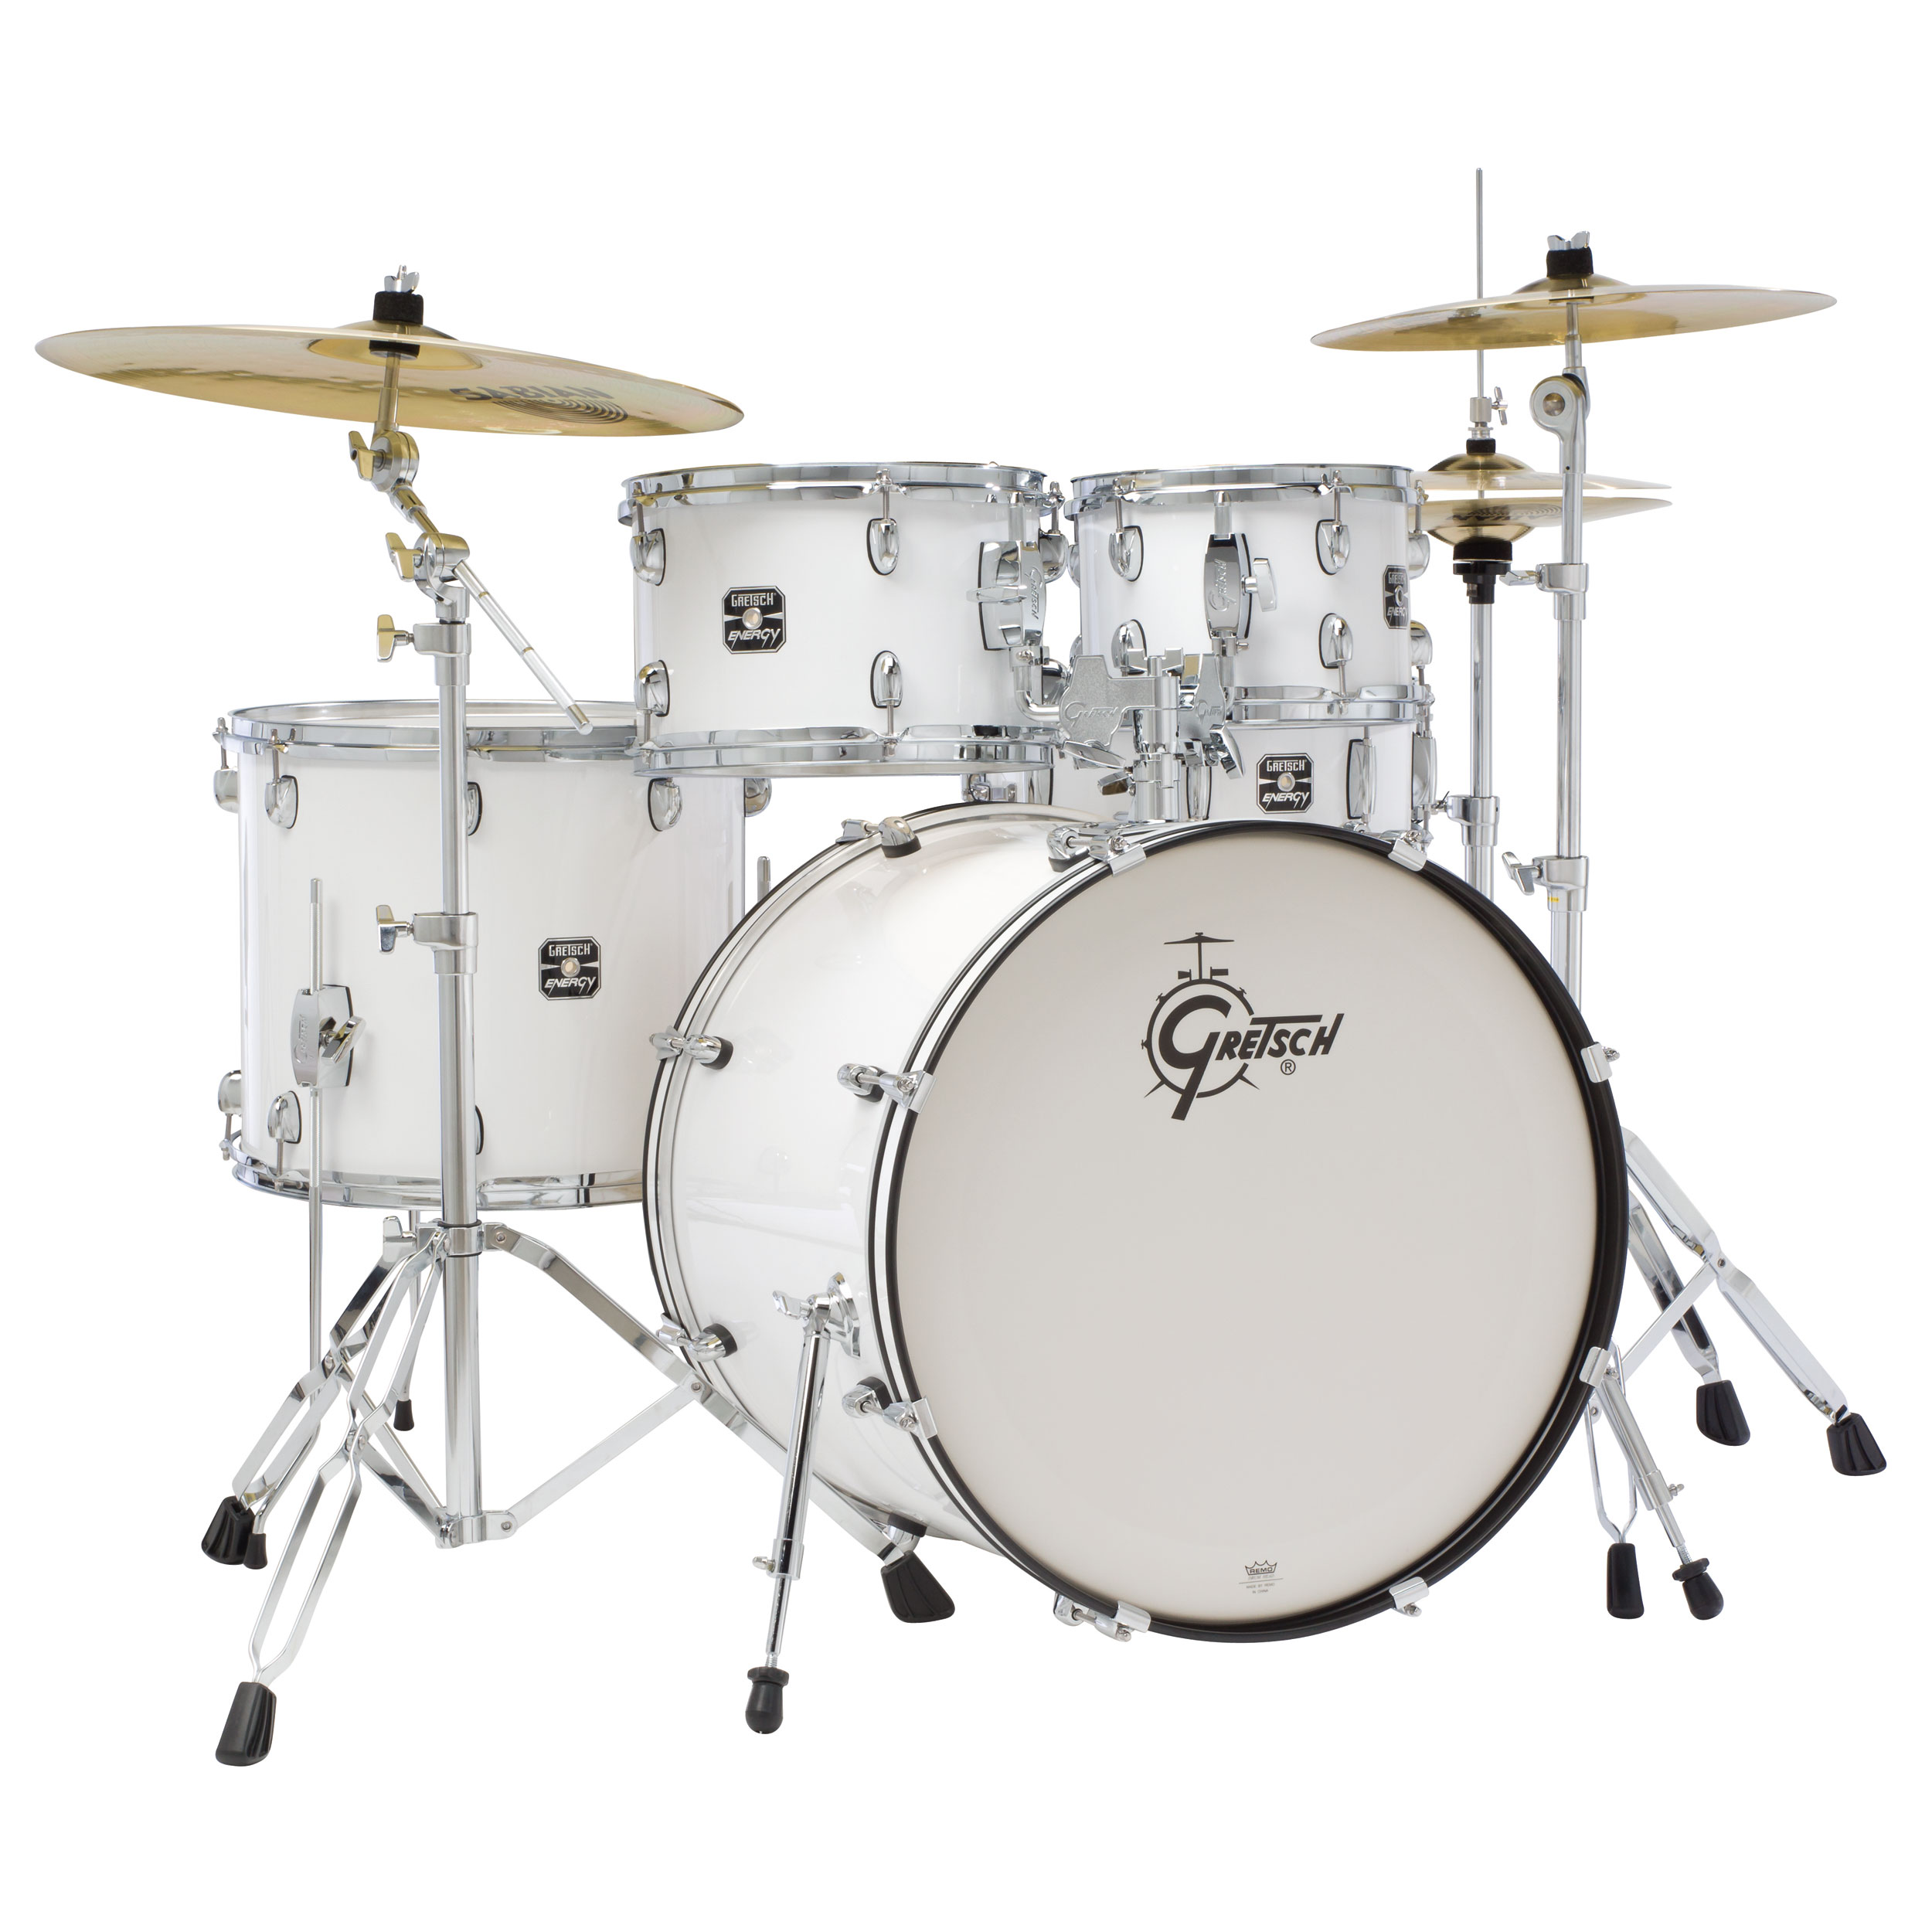 gretsch energy drum set w hardware and cymbals 22 bass 10 12 16 toms 14 snare gex e825pk. Black Bedroom Furniture Sets. Home Design Ideas